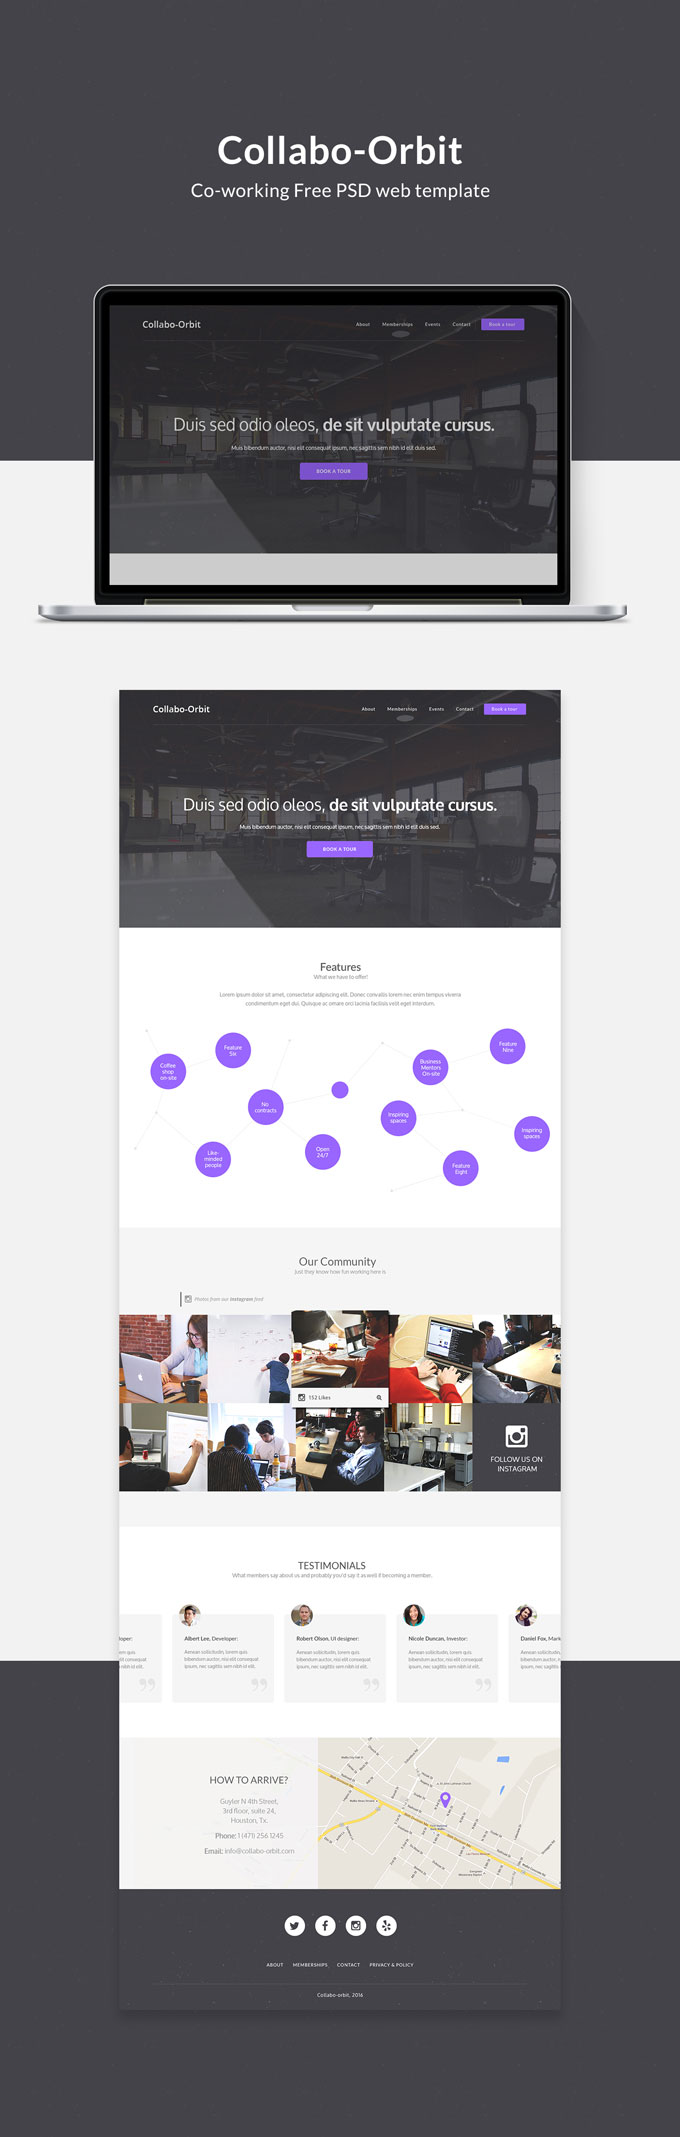 Collabo-Orbit - Coworking free PSD web template - Commit 2 Design